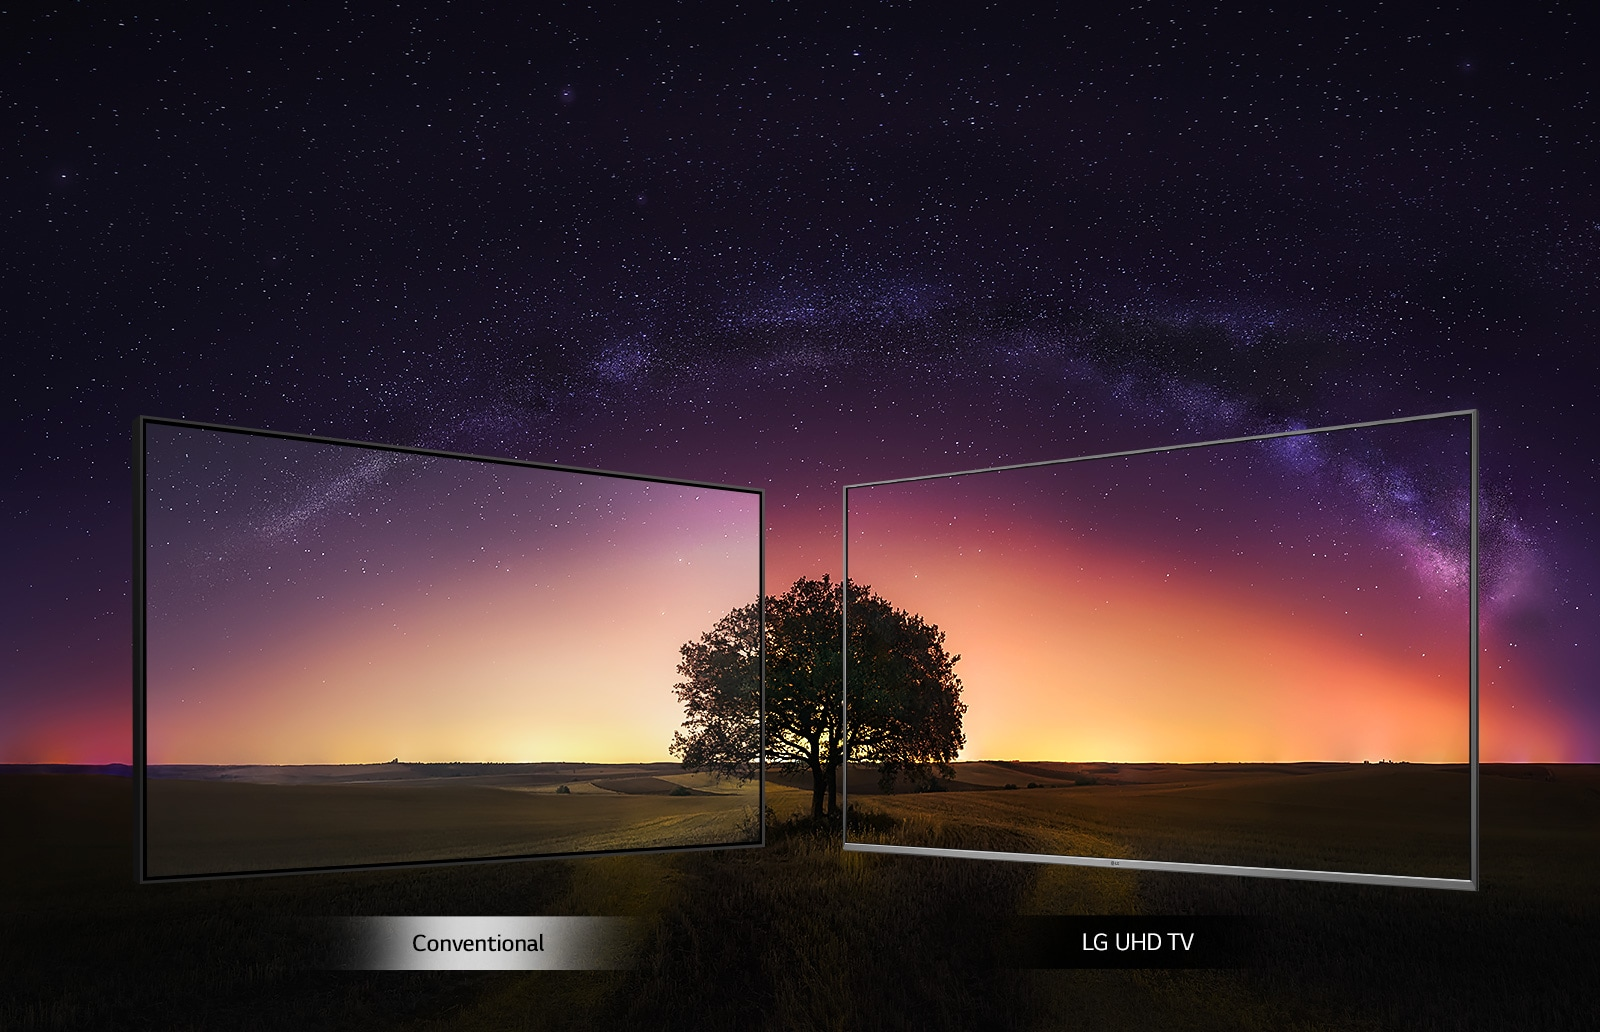 More realistic 4K TV images with IPS 4K TV Display1